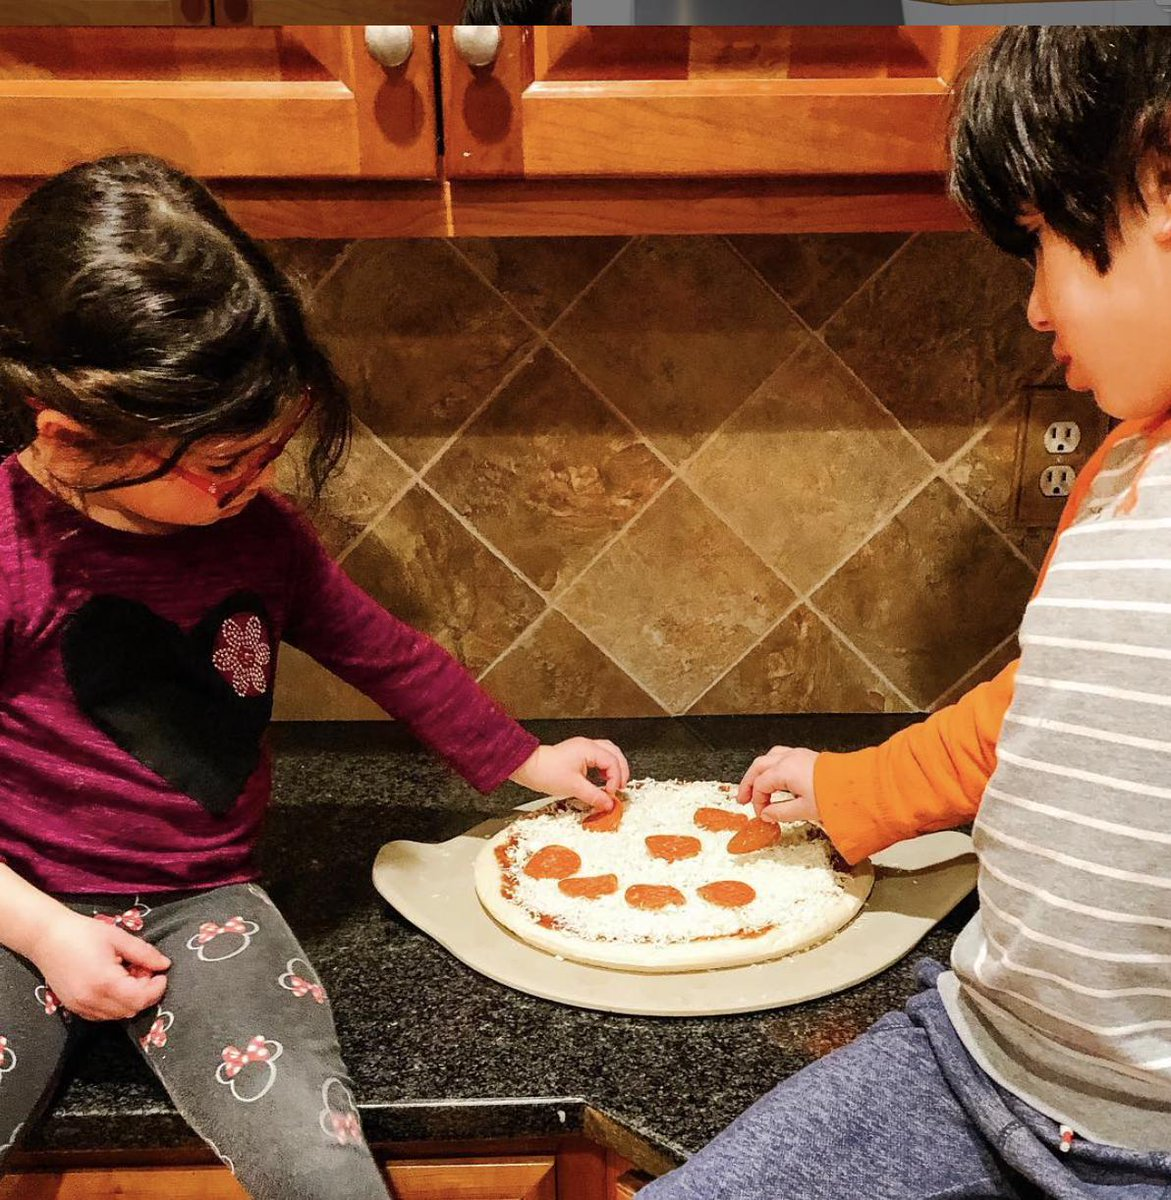 .@dentistmel spent some time with their kids building a #Pizza Kit! 😍 Looks like they had fun!  If you need to #fundraise for your group, so families in your area can enjoy putting together Pizza Kits as well, visit http://PizzaKit.com to learn how easy it is to start! 😃